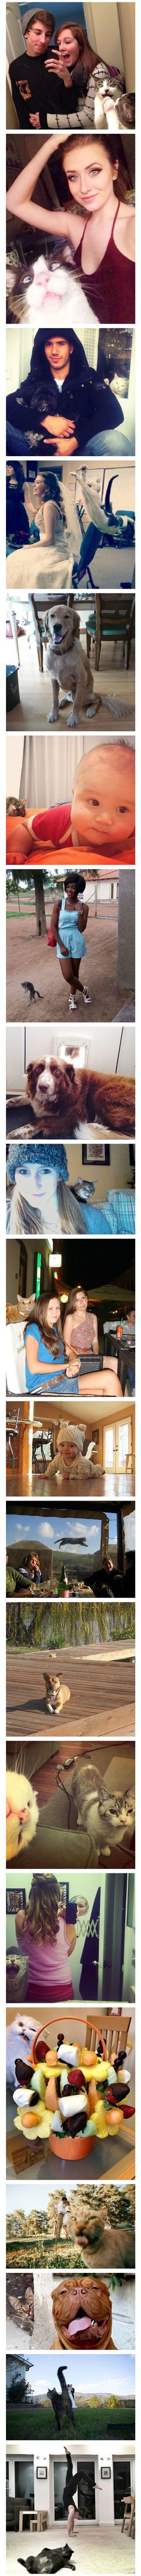 Creeps lol 20 Funny Cat Photobombs To Make You Smile - MyFunnyPalace